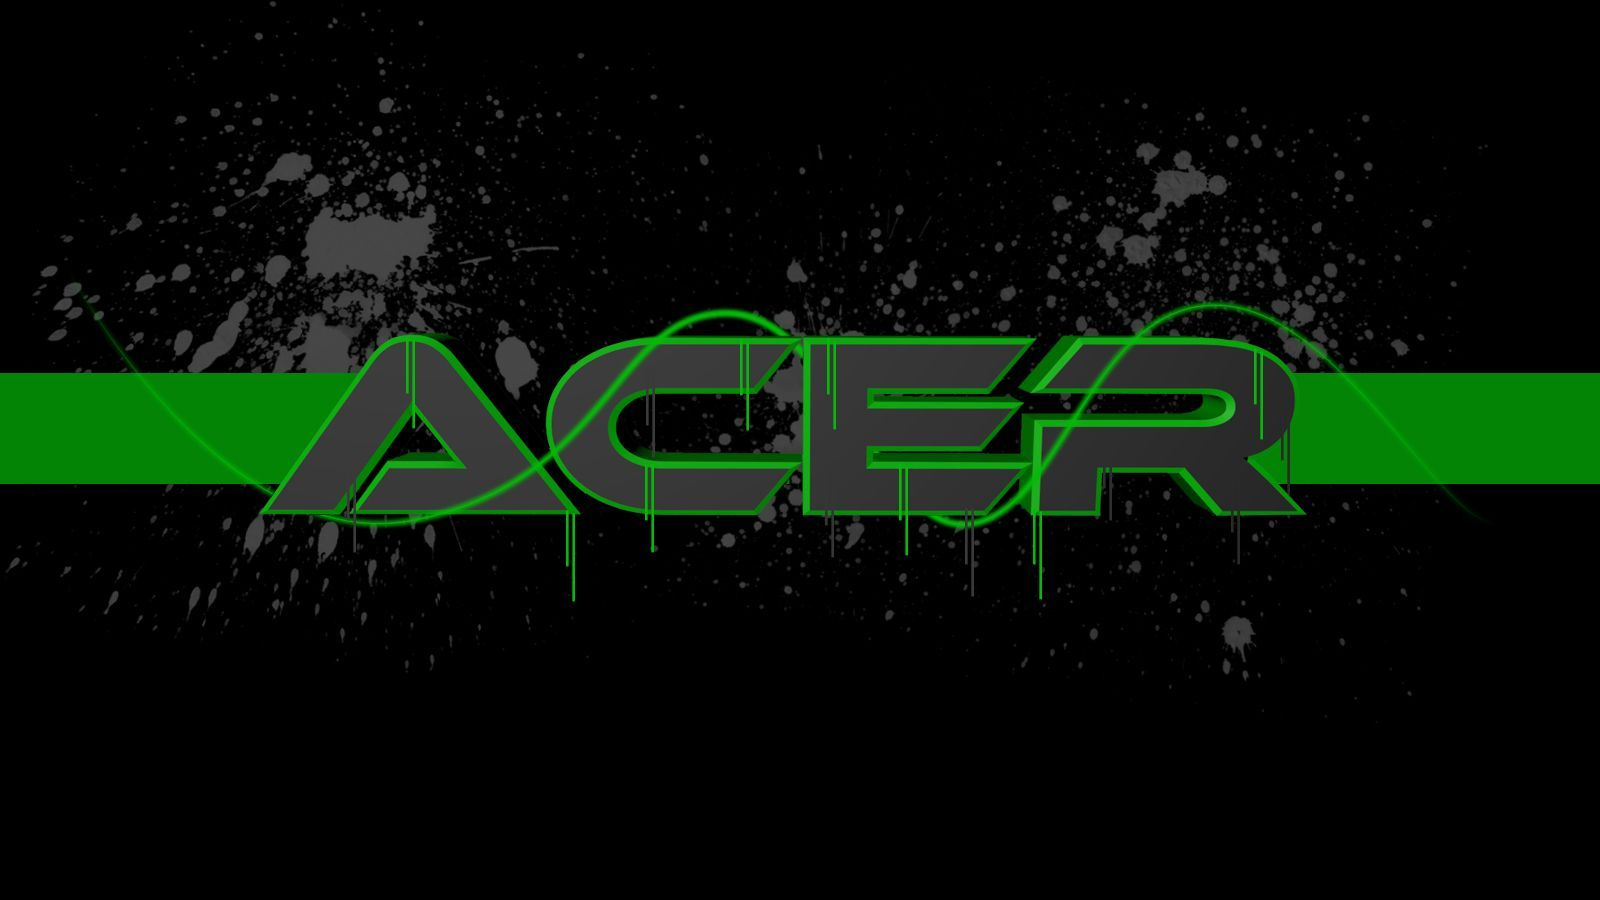 Acer Wallpapers 2015 - Wallpaper Cave